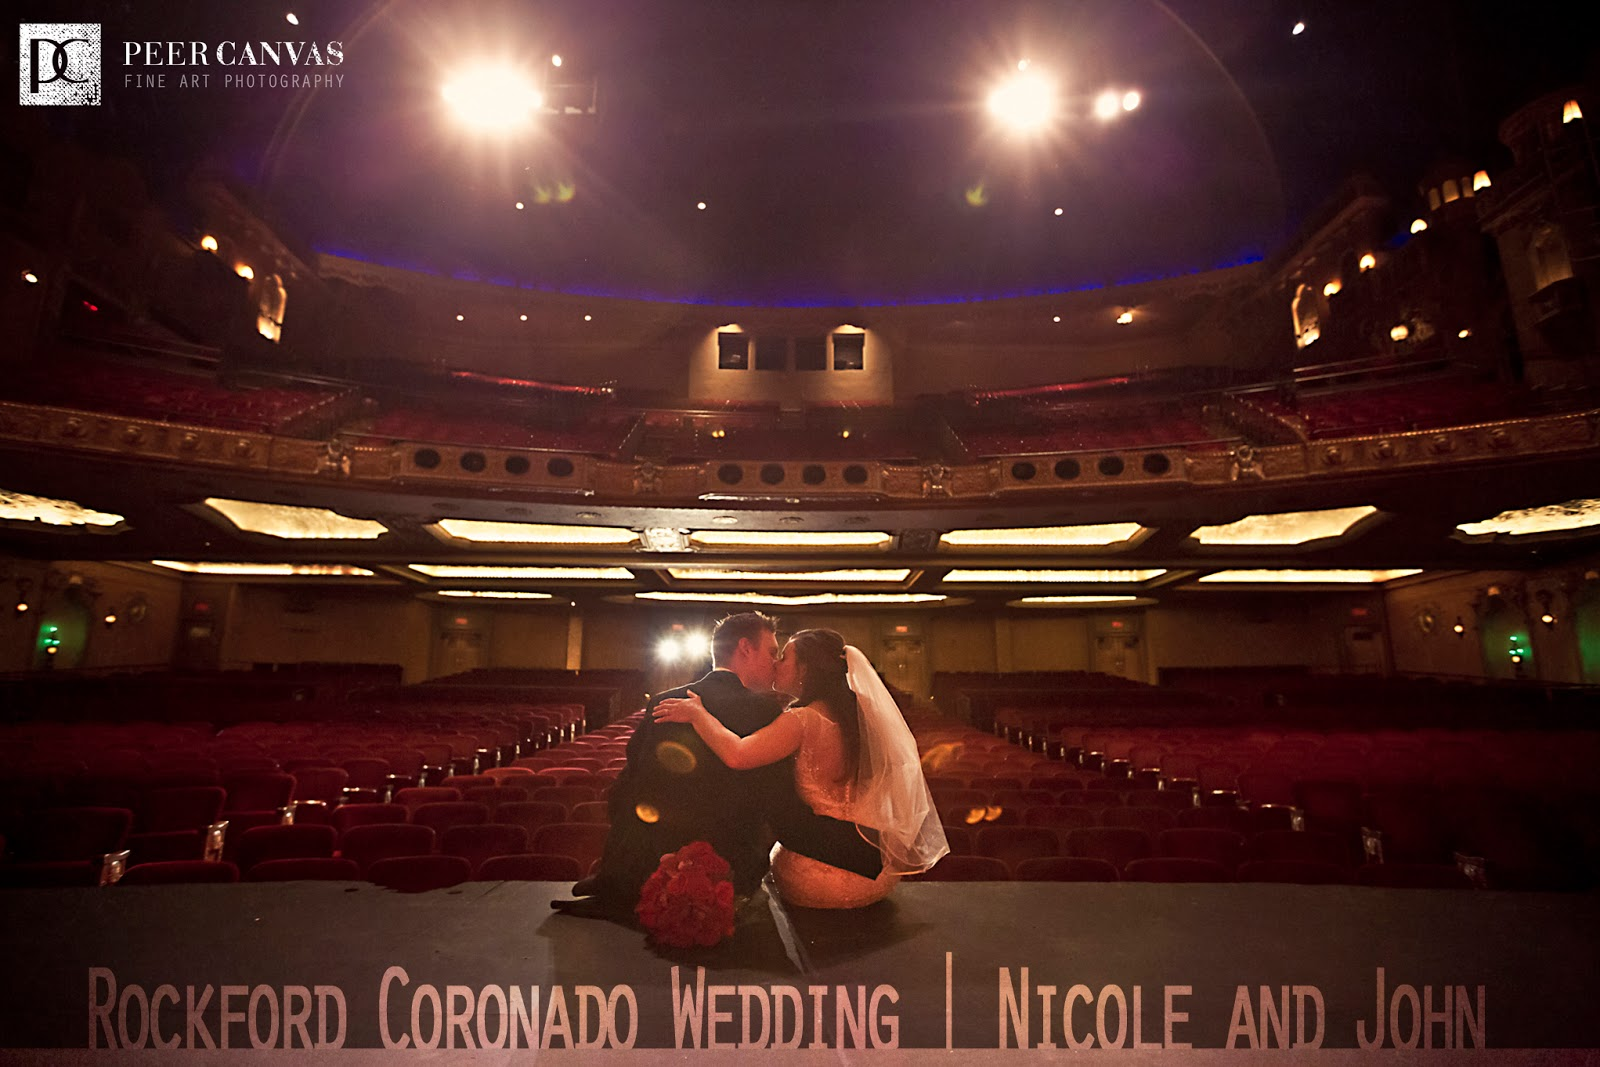 Last Night Was The Amazing Wedding Of Nicole And John At Coronado Theatre In Rockford Il There Were Lights Cameras Action Dancing